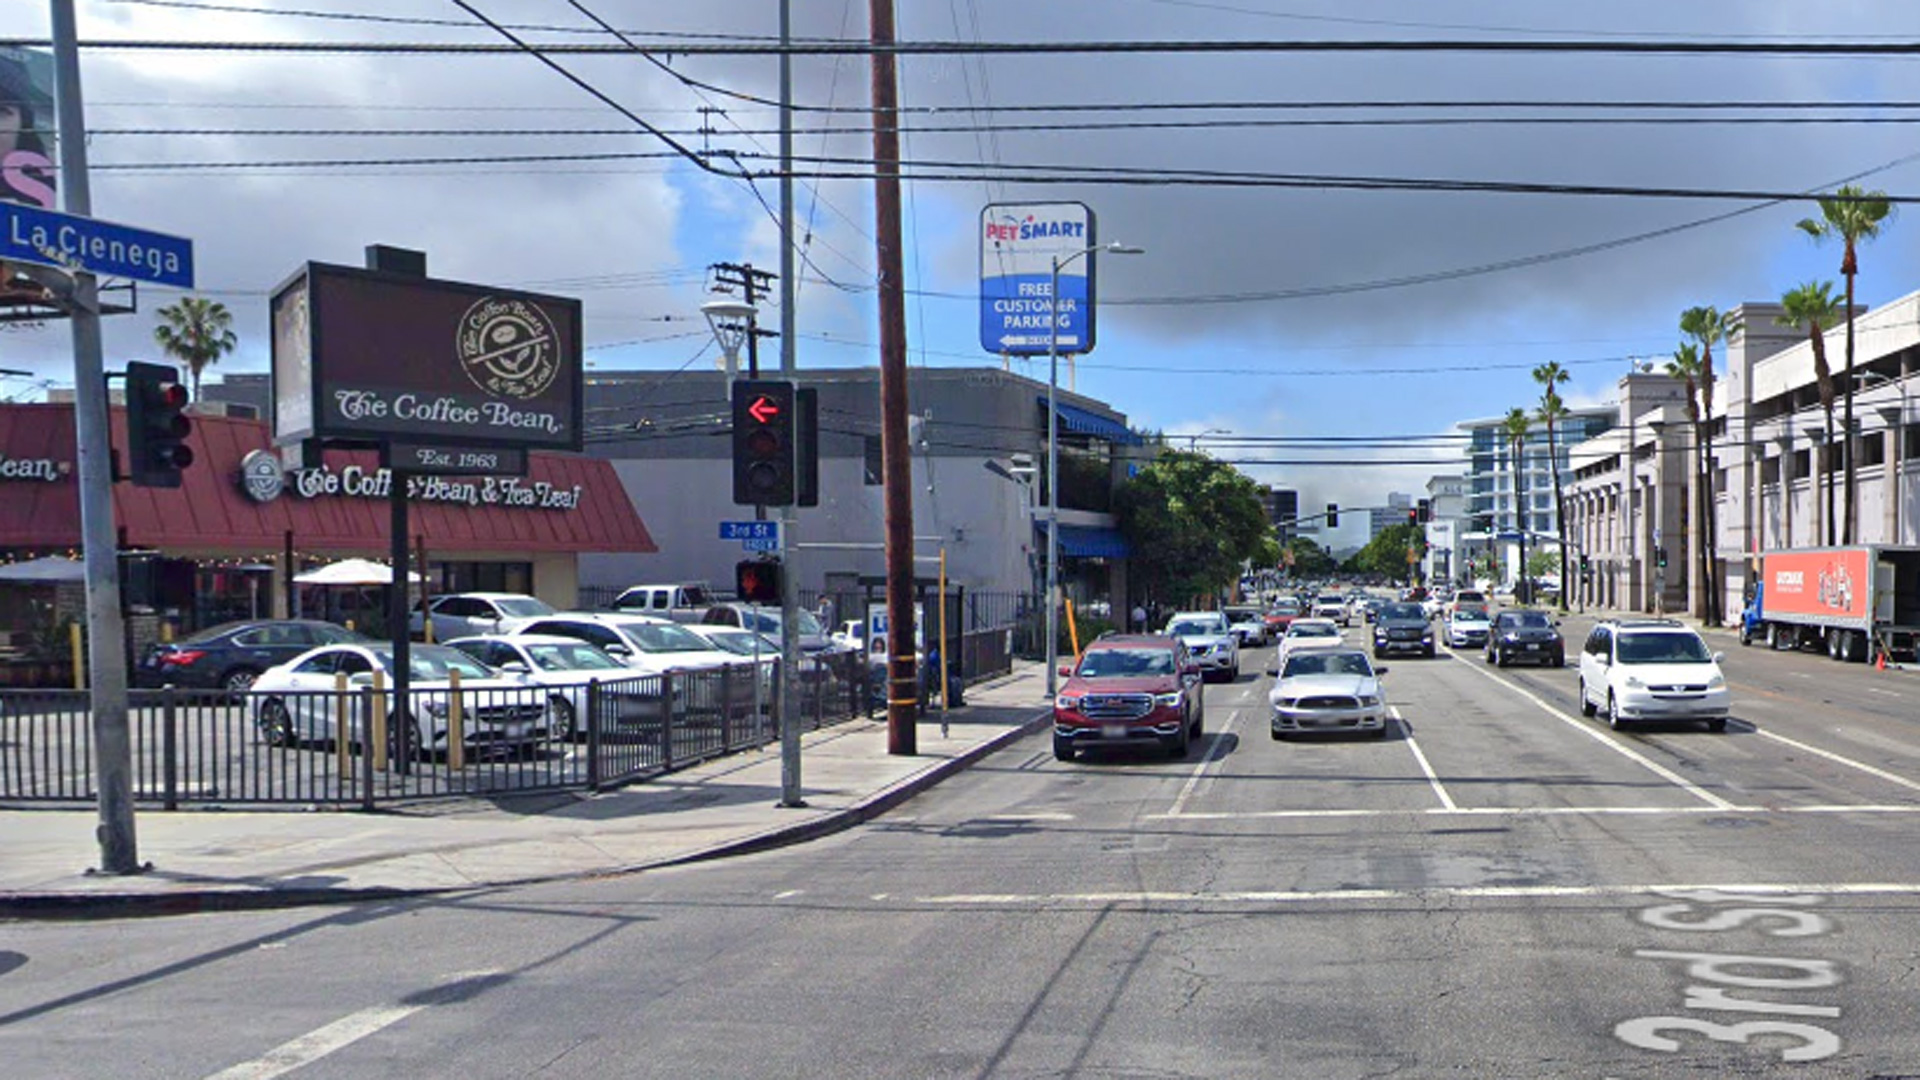 The intersection of 3rd Street and La Cienega is seen in an image from Google Maps.